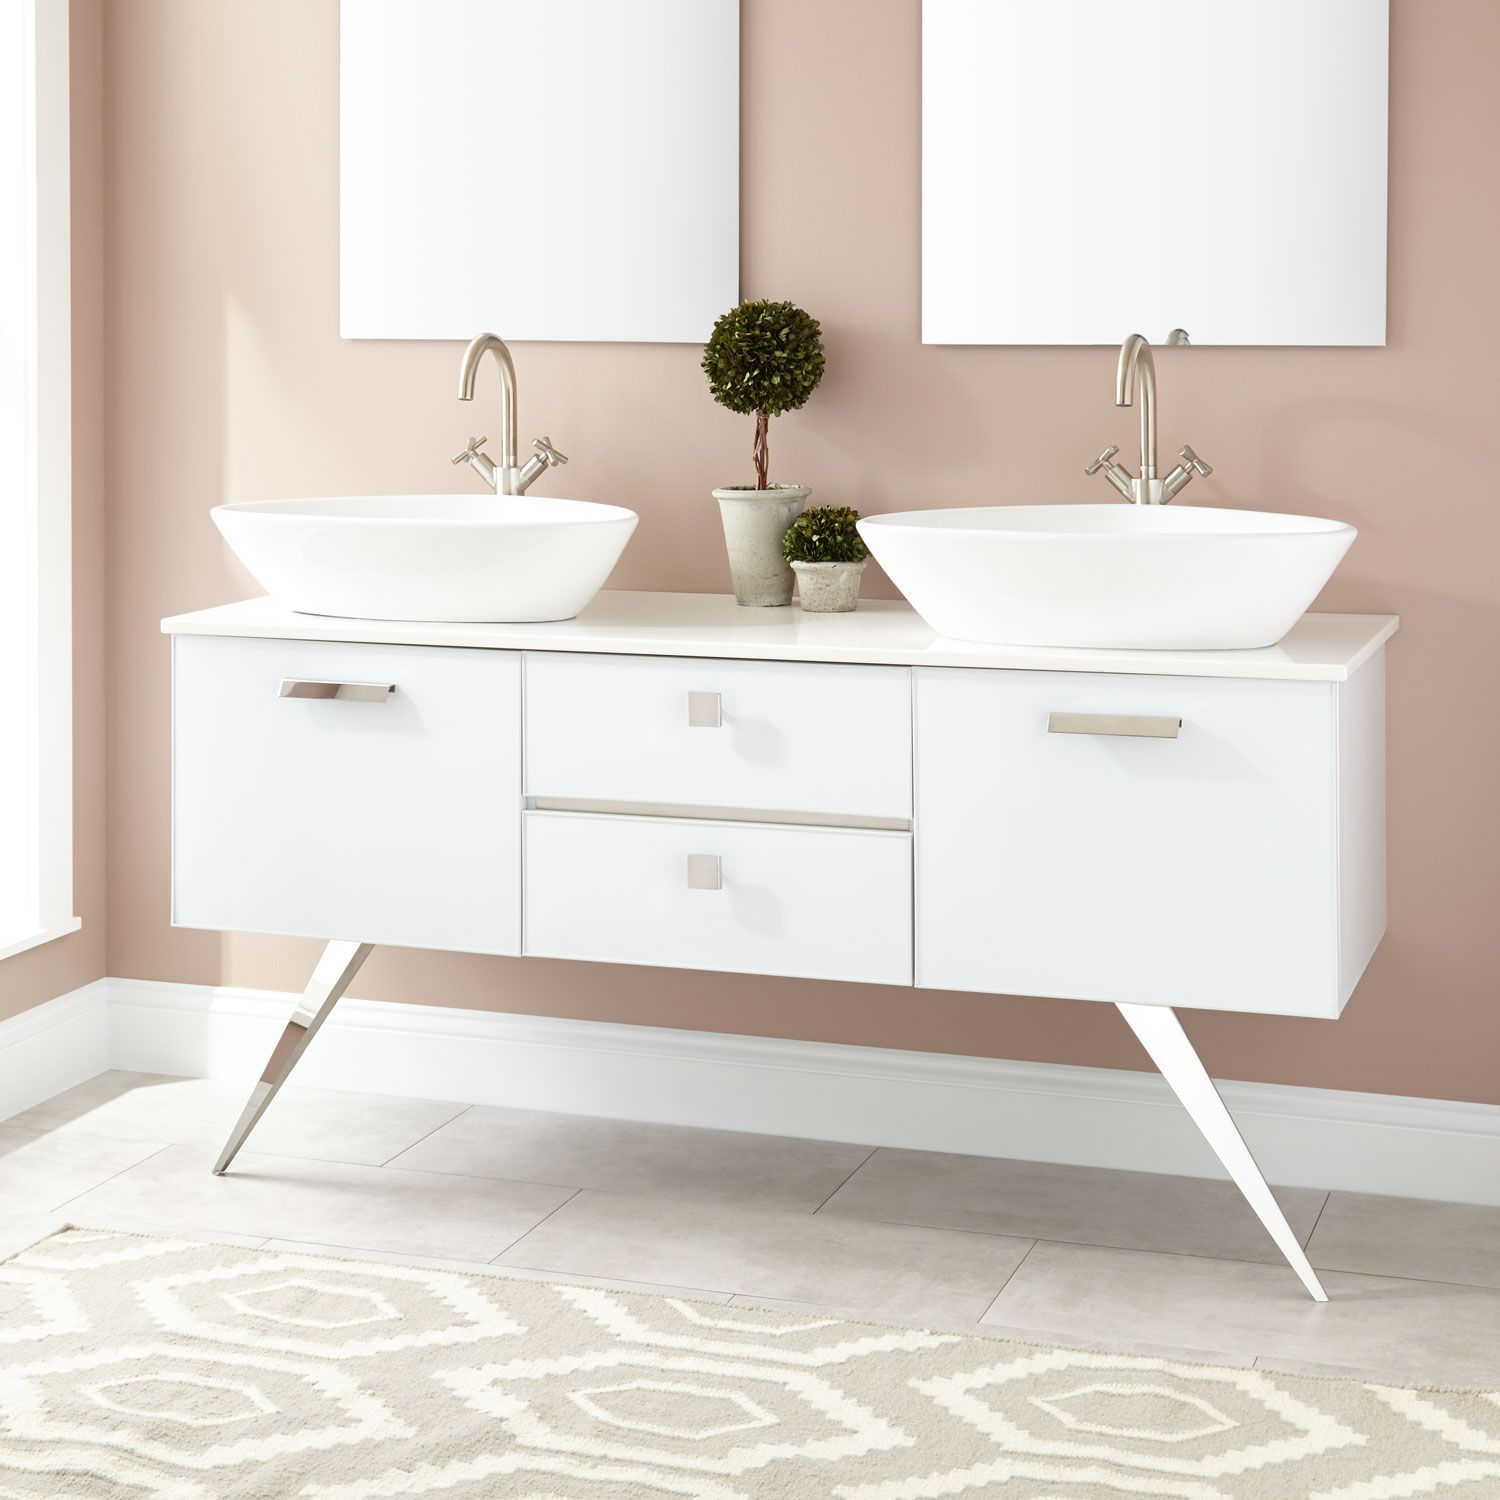 search results for 'wall mount vanity'  double sink